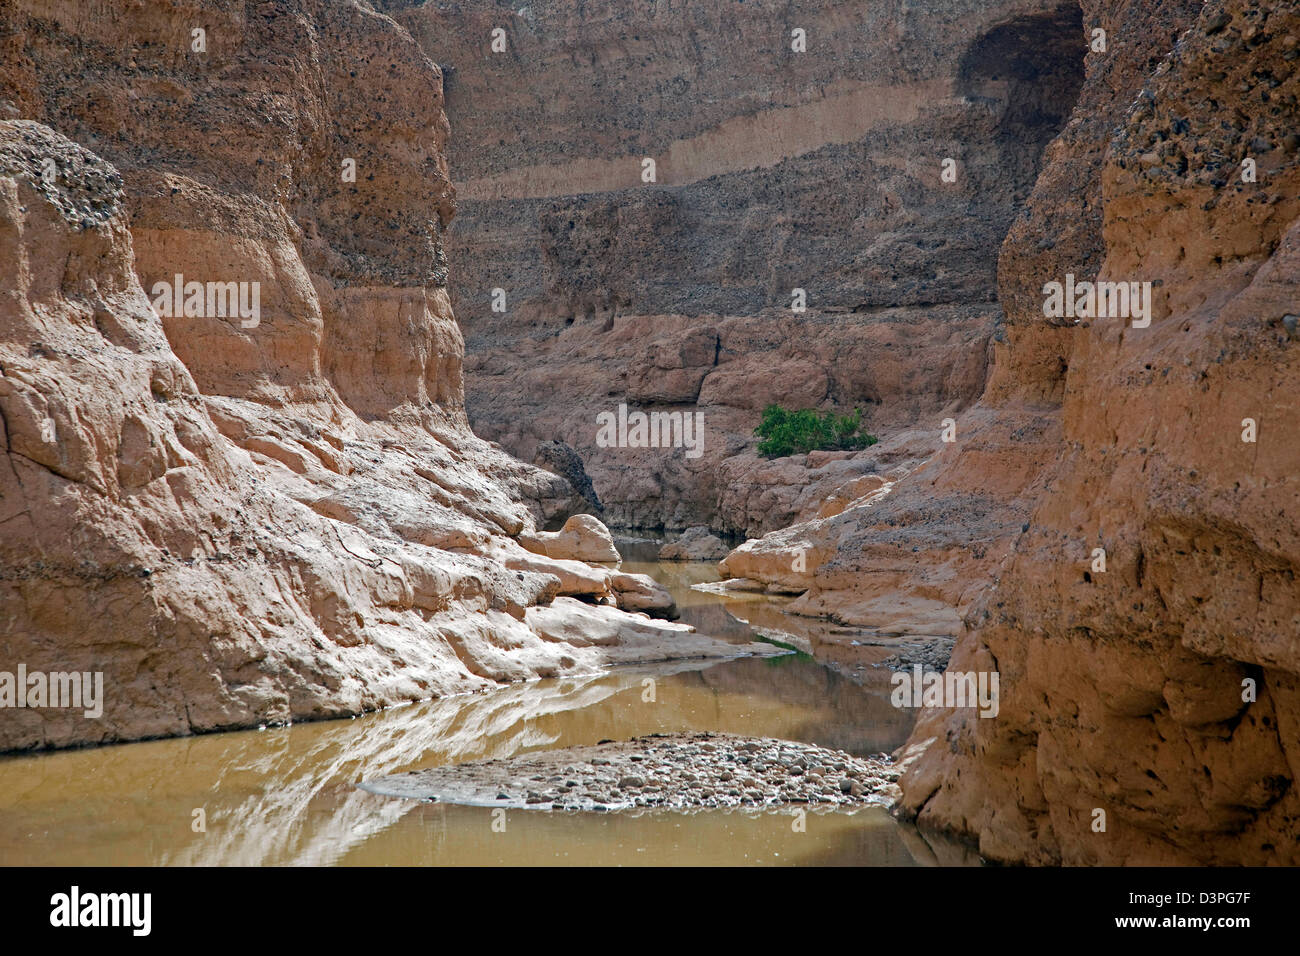 Sesriem canyon carved by the Tsauchab rivier in the Namib Desert, Namib-Naukluft National Park, Namibia, South Africa - Stock Image